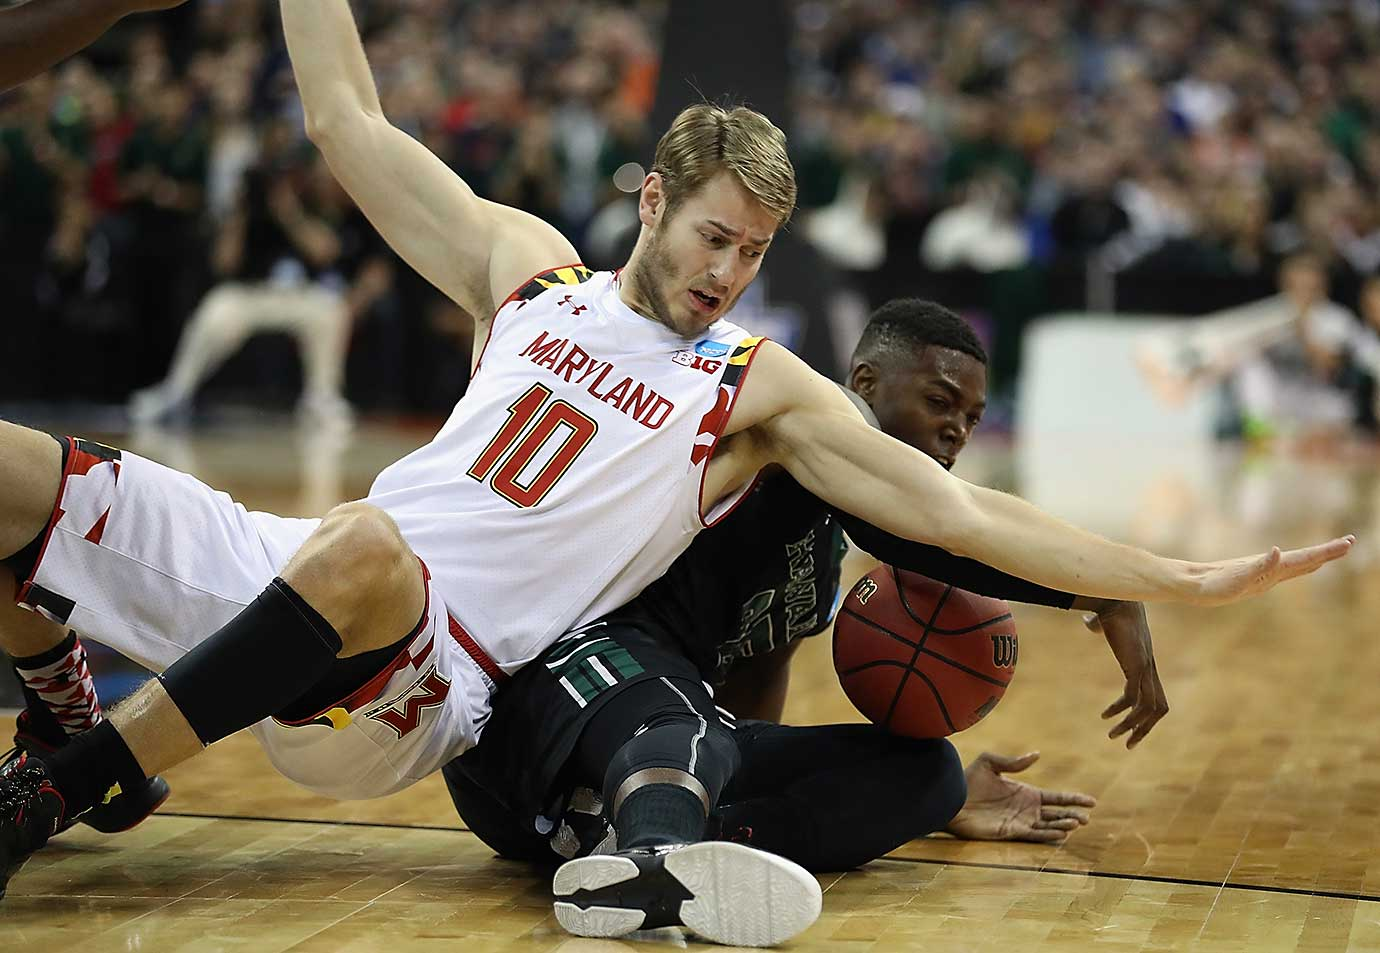 Michael Thomas of Hawaii battles for possession against Jake Layman of the Maryland Terrapins.